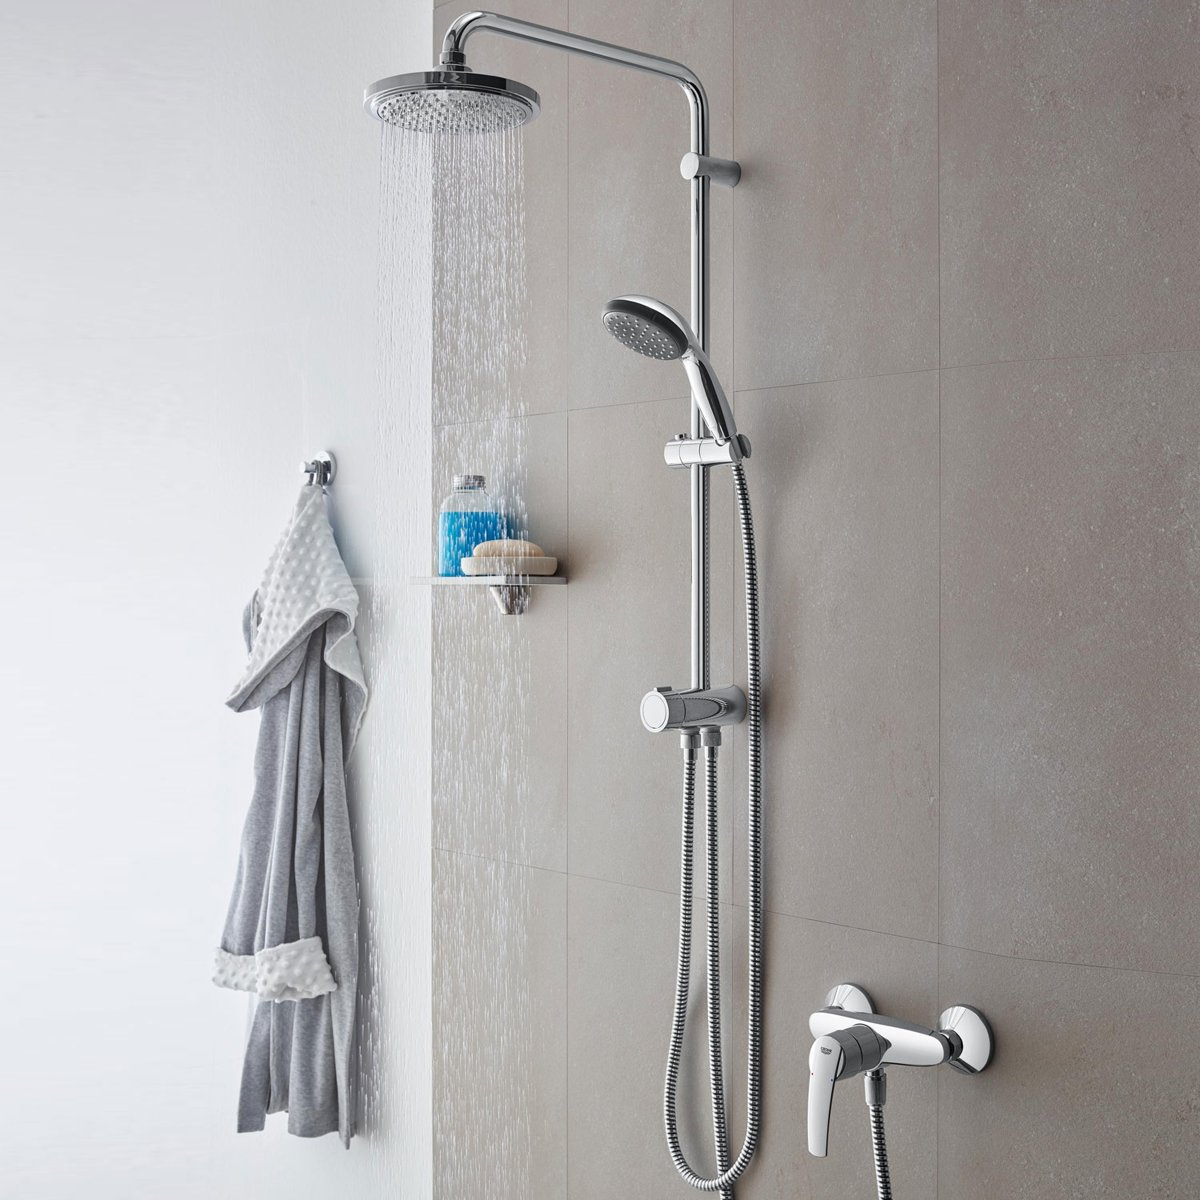 Grohe Doucheset Vitalio Start Grohe Vitalio Start 180 Flex Douchesysteem Met Omstelling Excl Thermostaatkraan